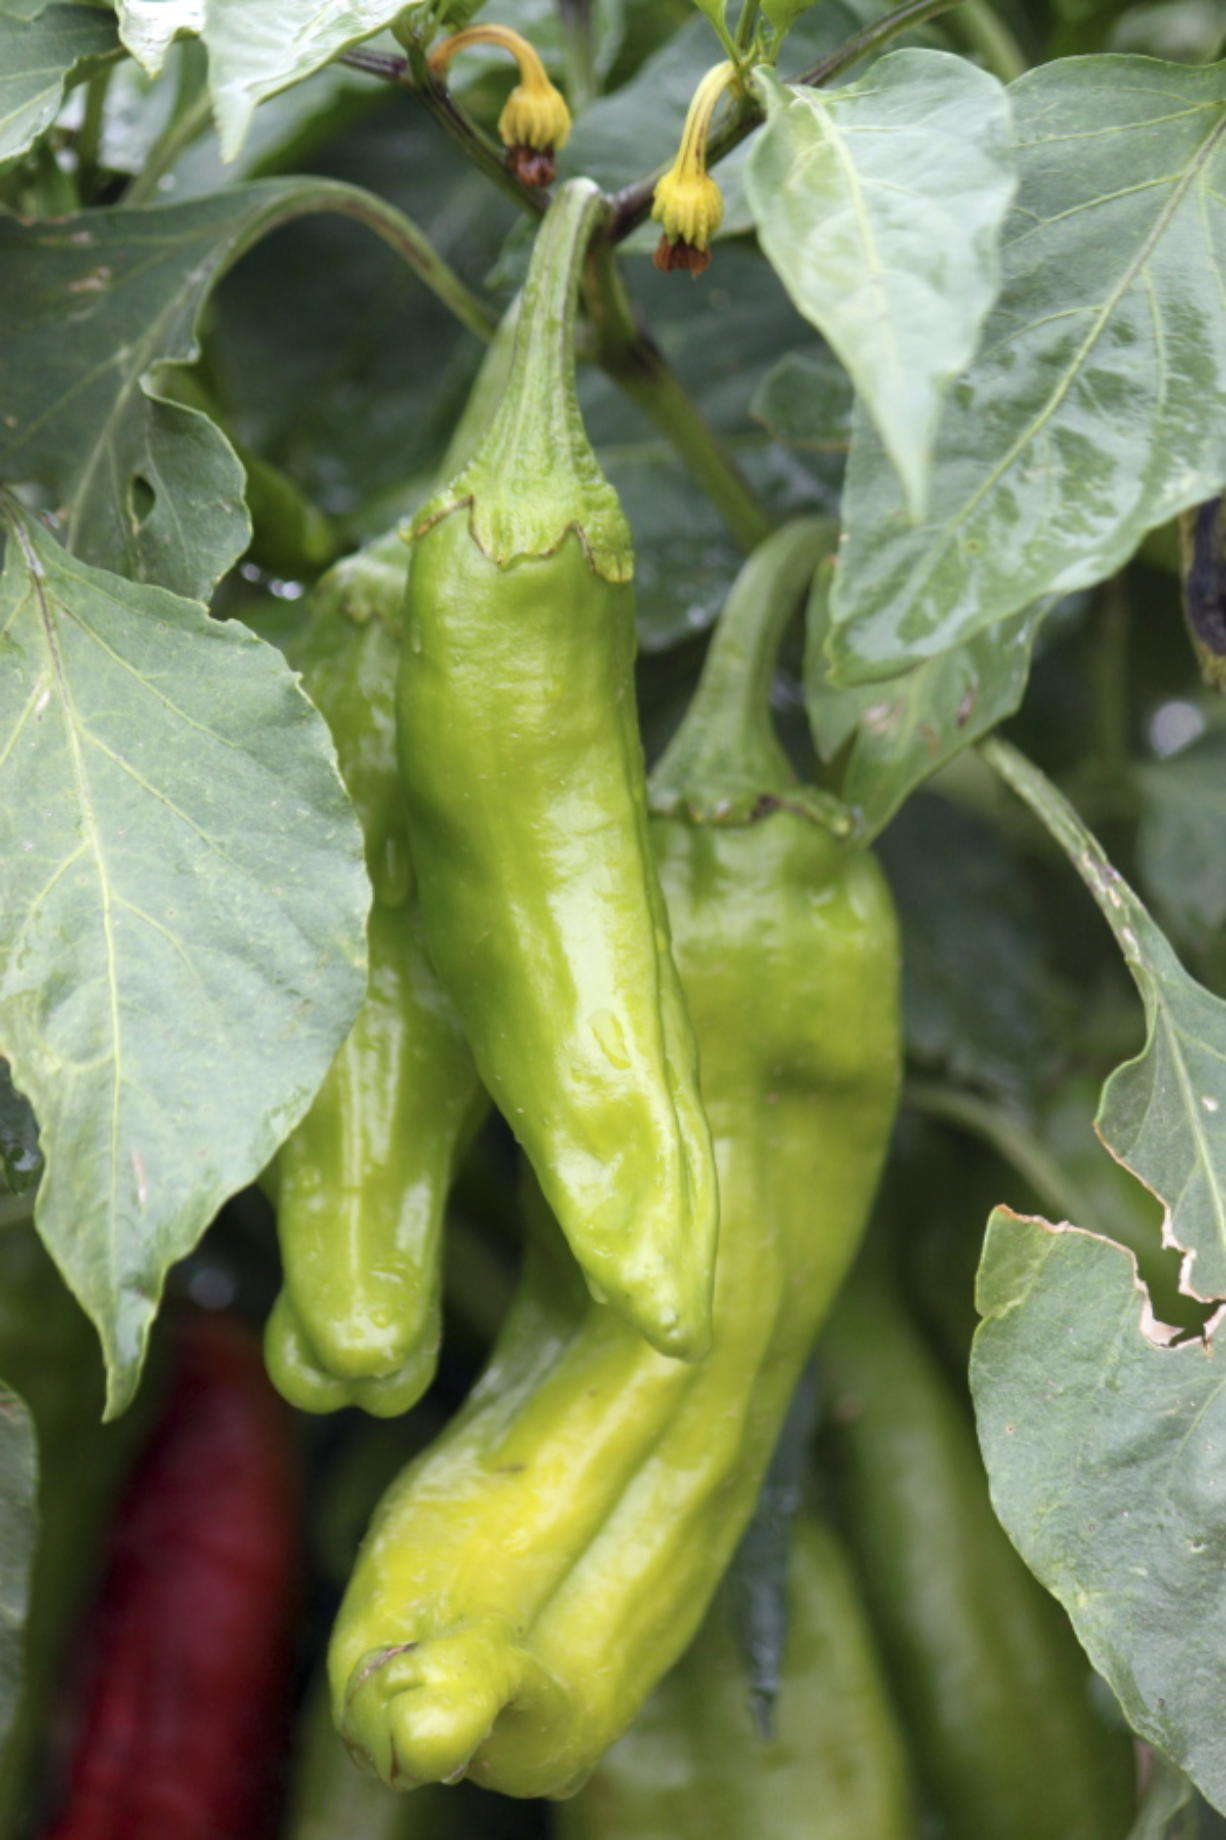 Green chilies grow in a research plot at New Mexico State University's agricultural science center in Los Lunas, N.M.